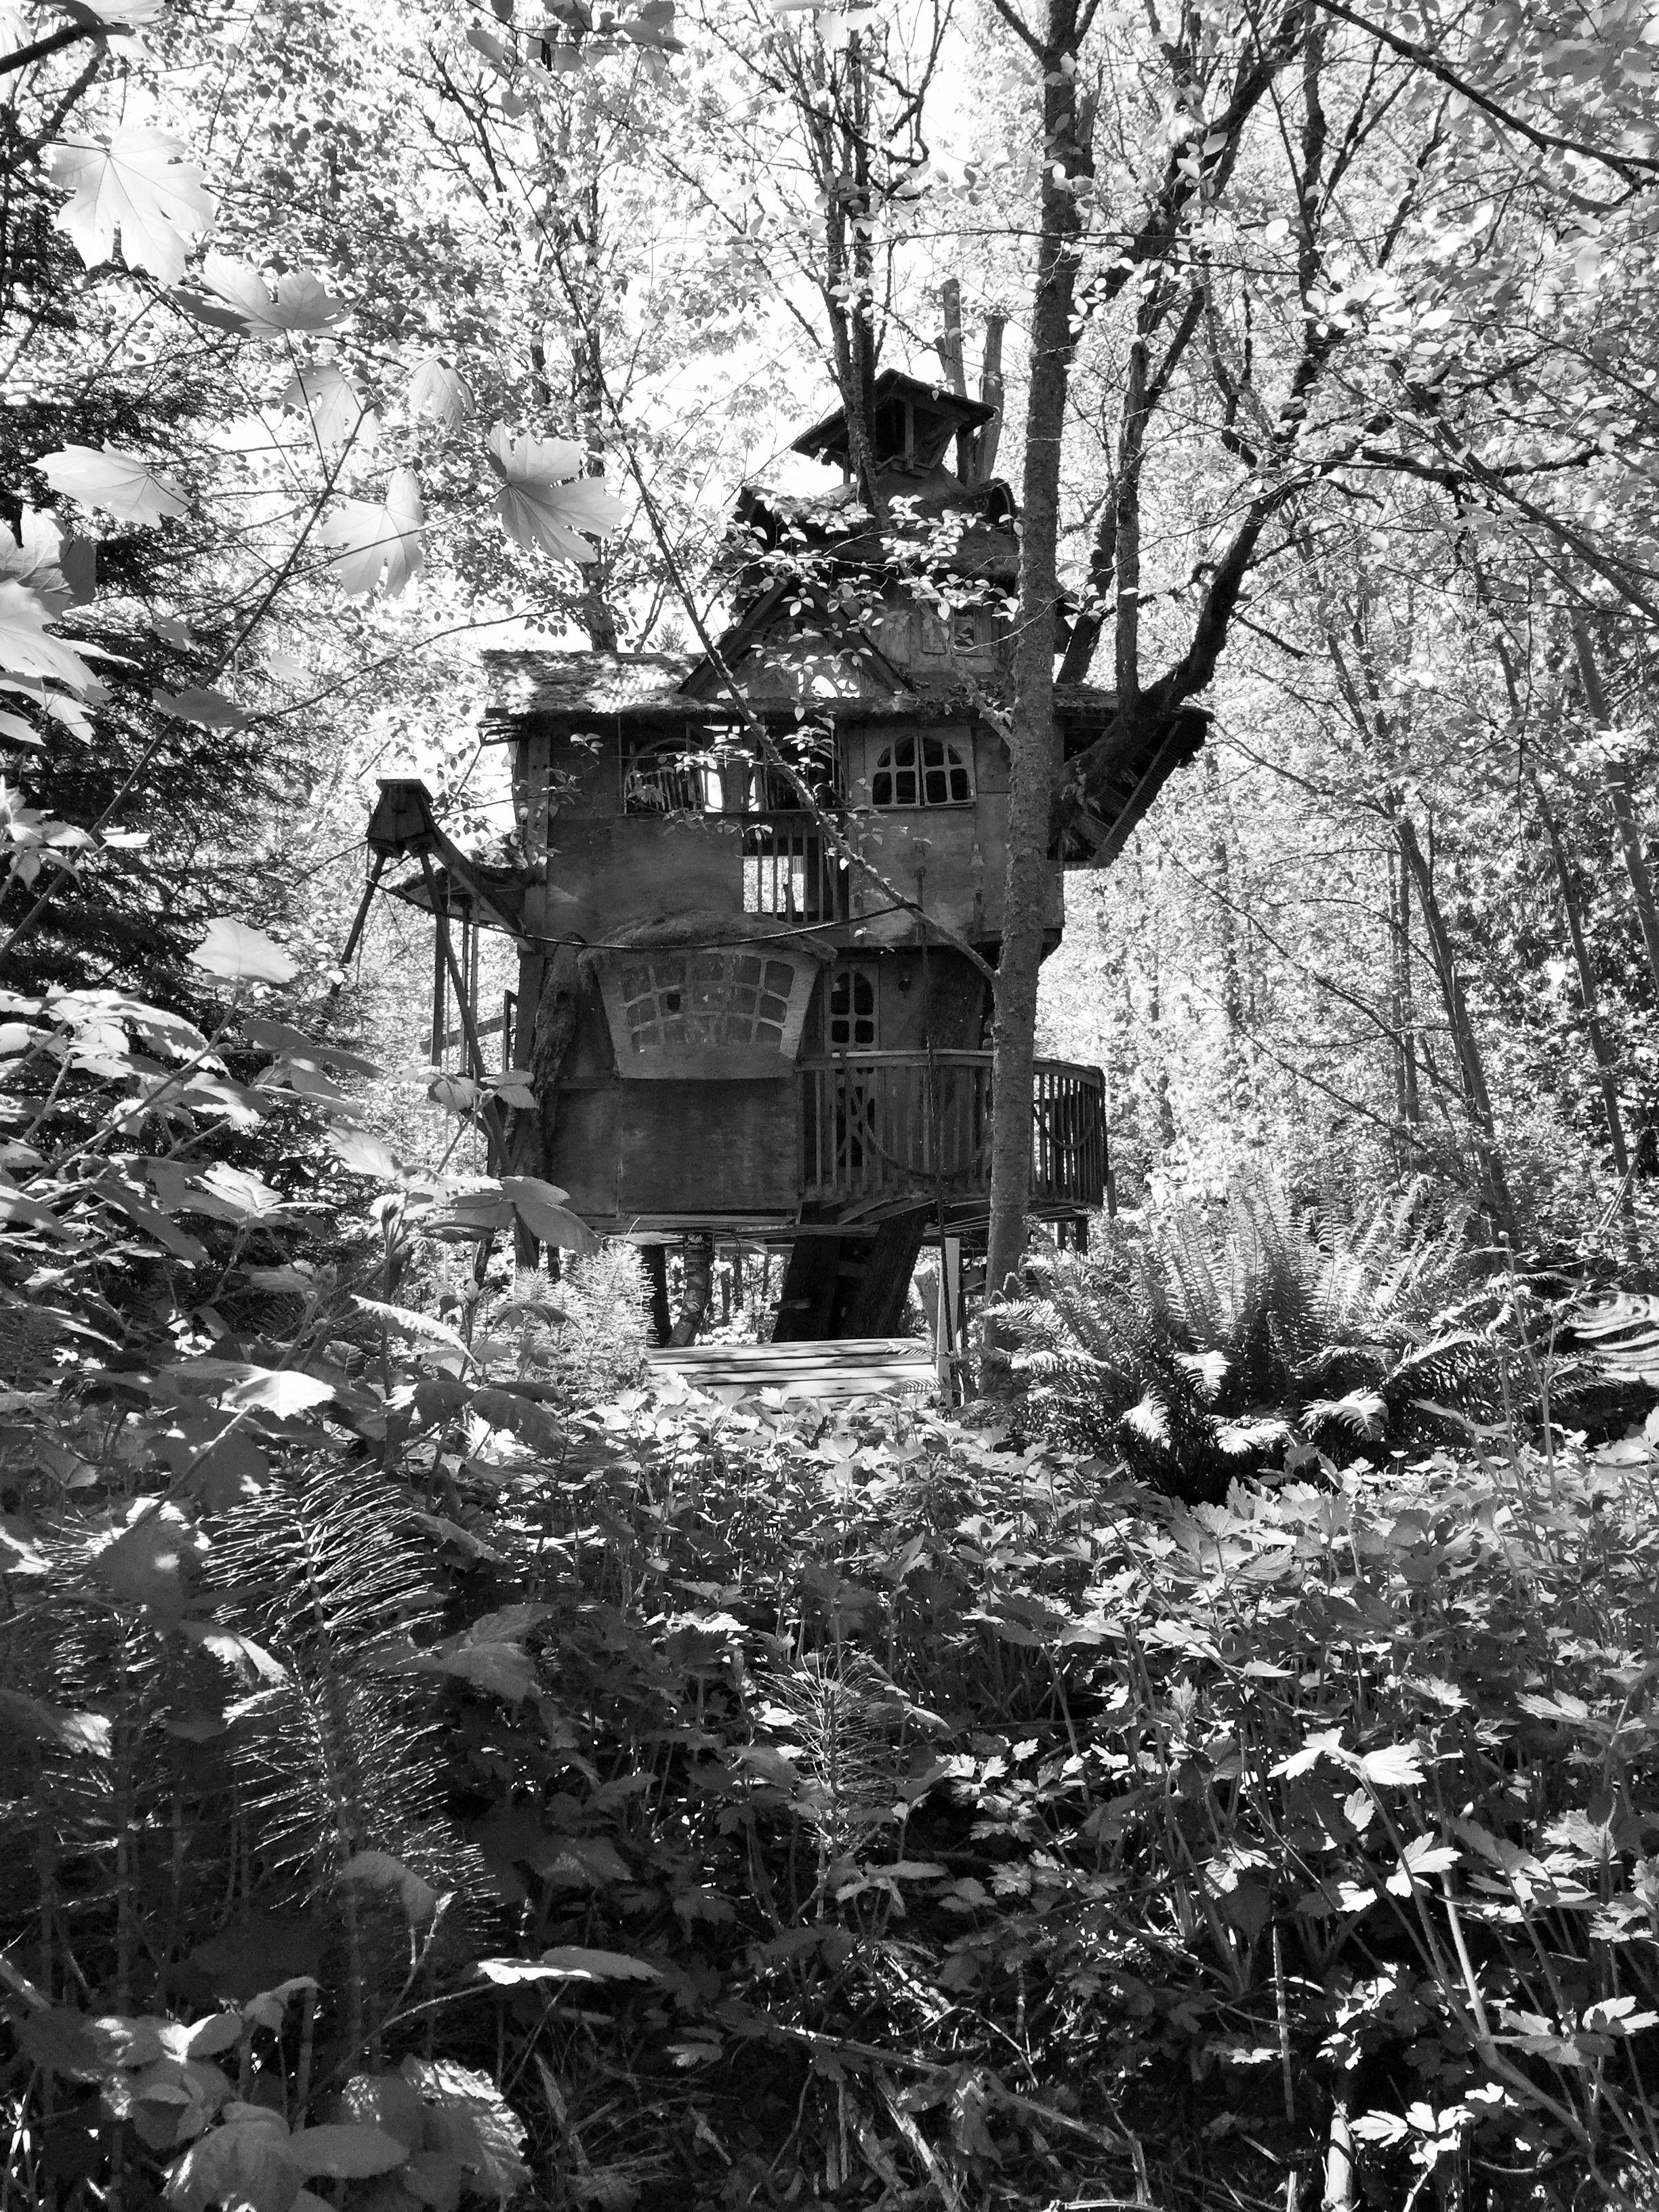 Redmond Abandoned Treehouse  Please Make Sure You Knock On